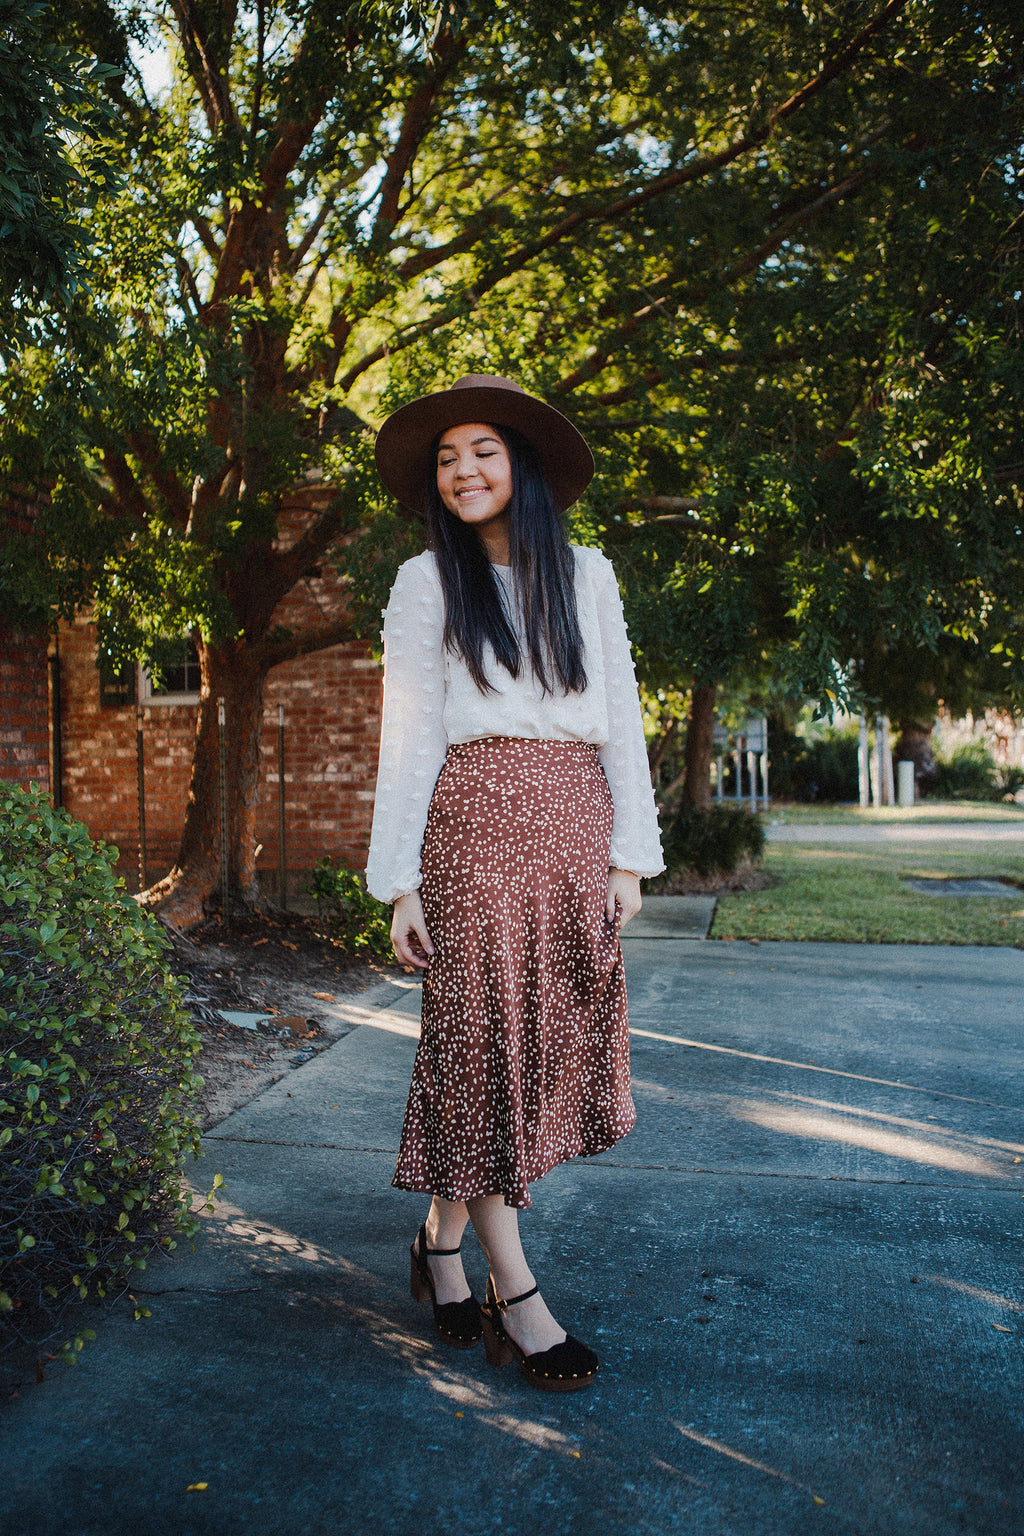 The Toni Polka Dot Skirt